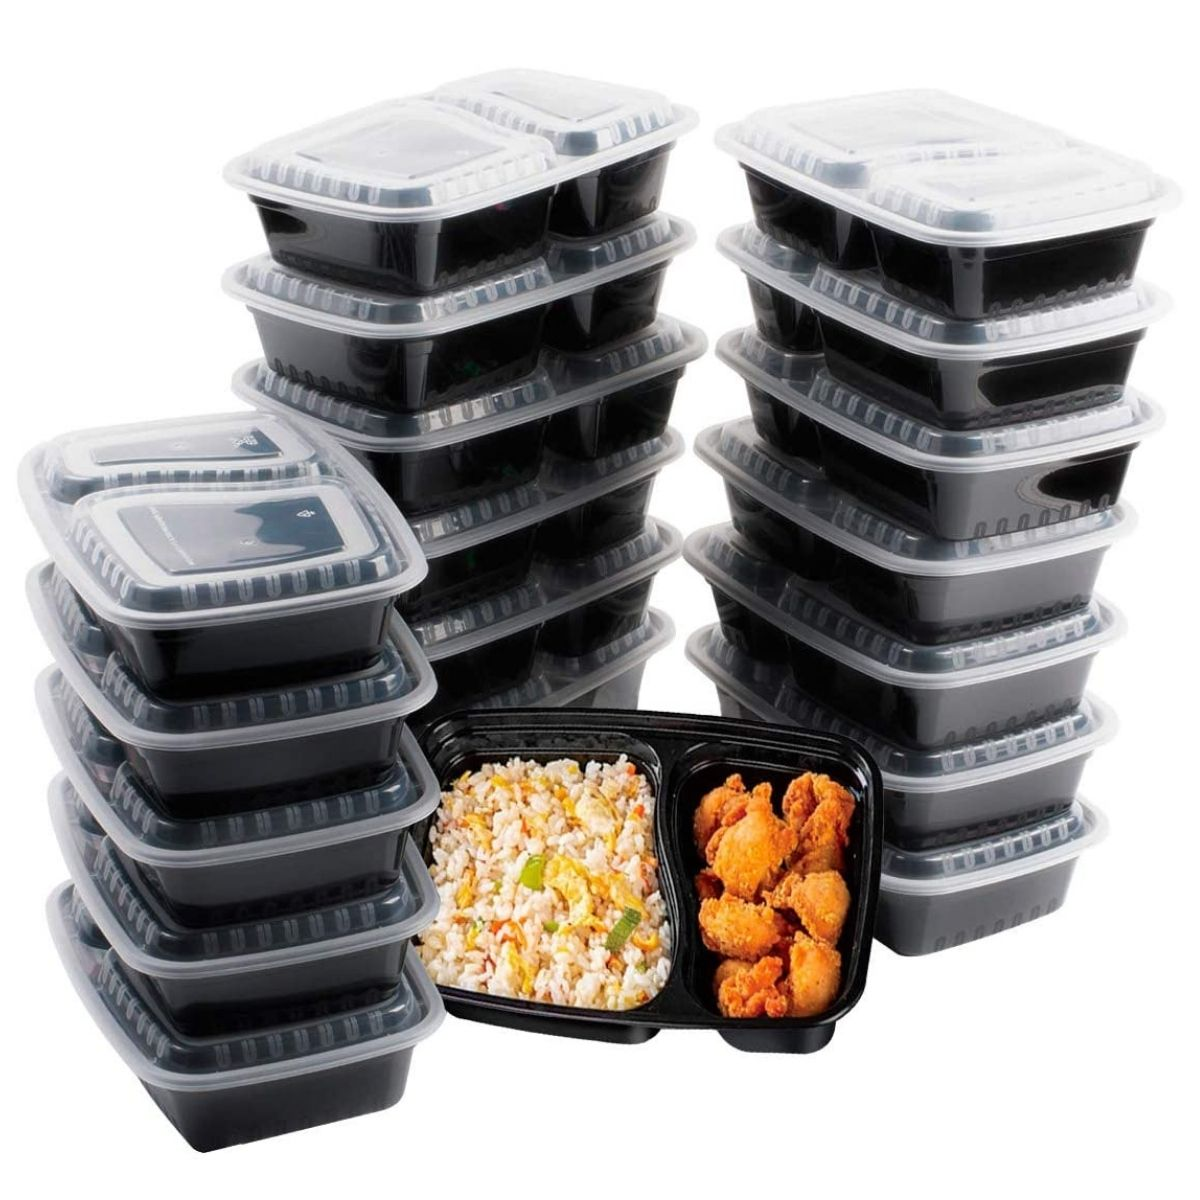 large stack of plastic meal prep containers